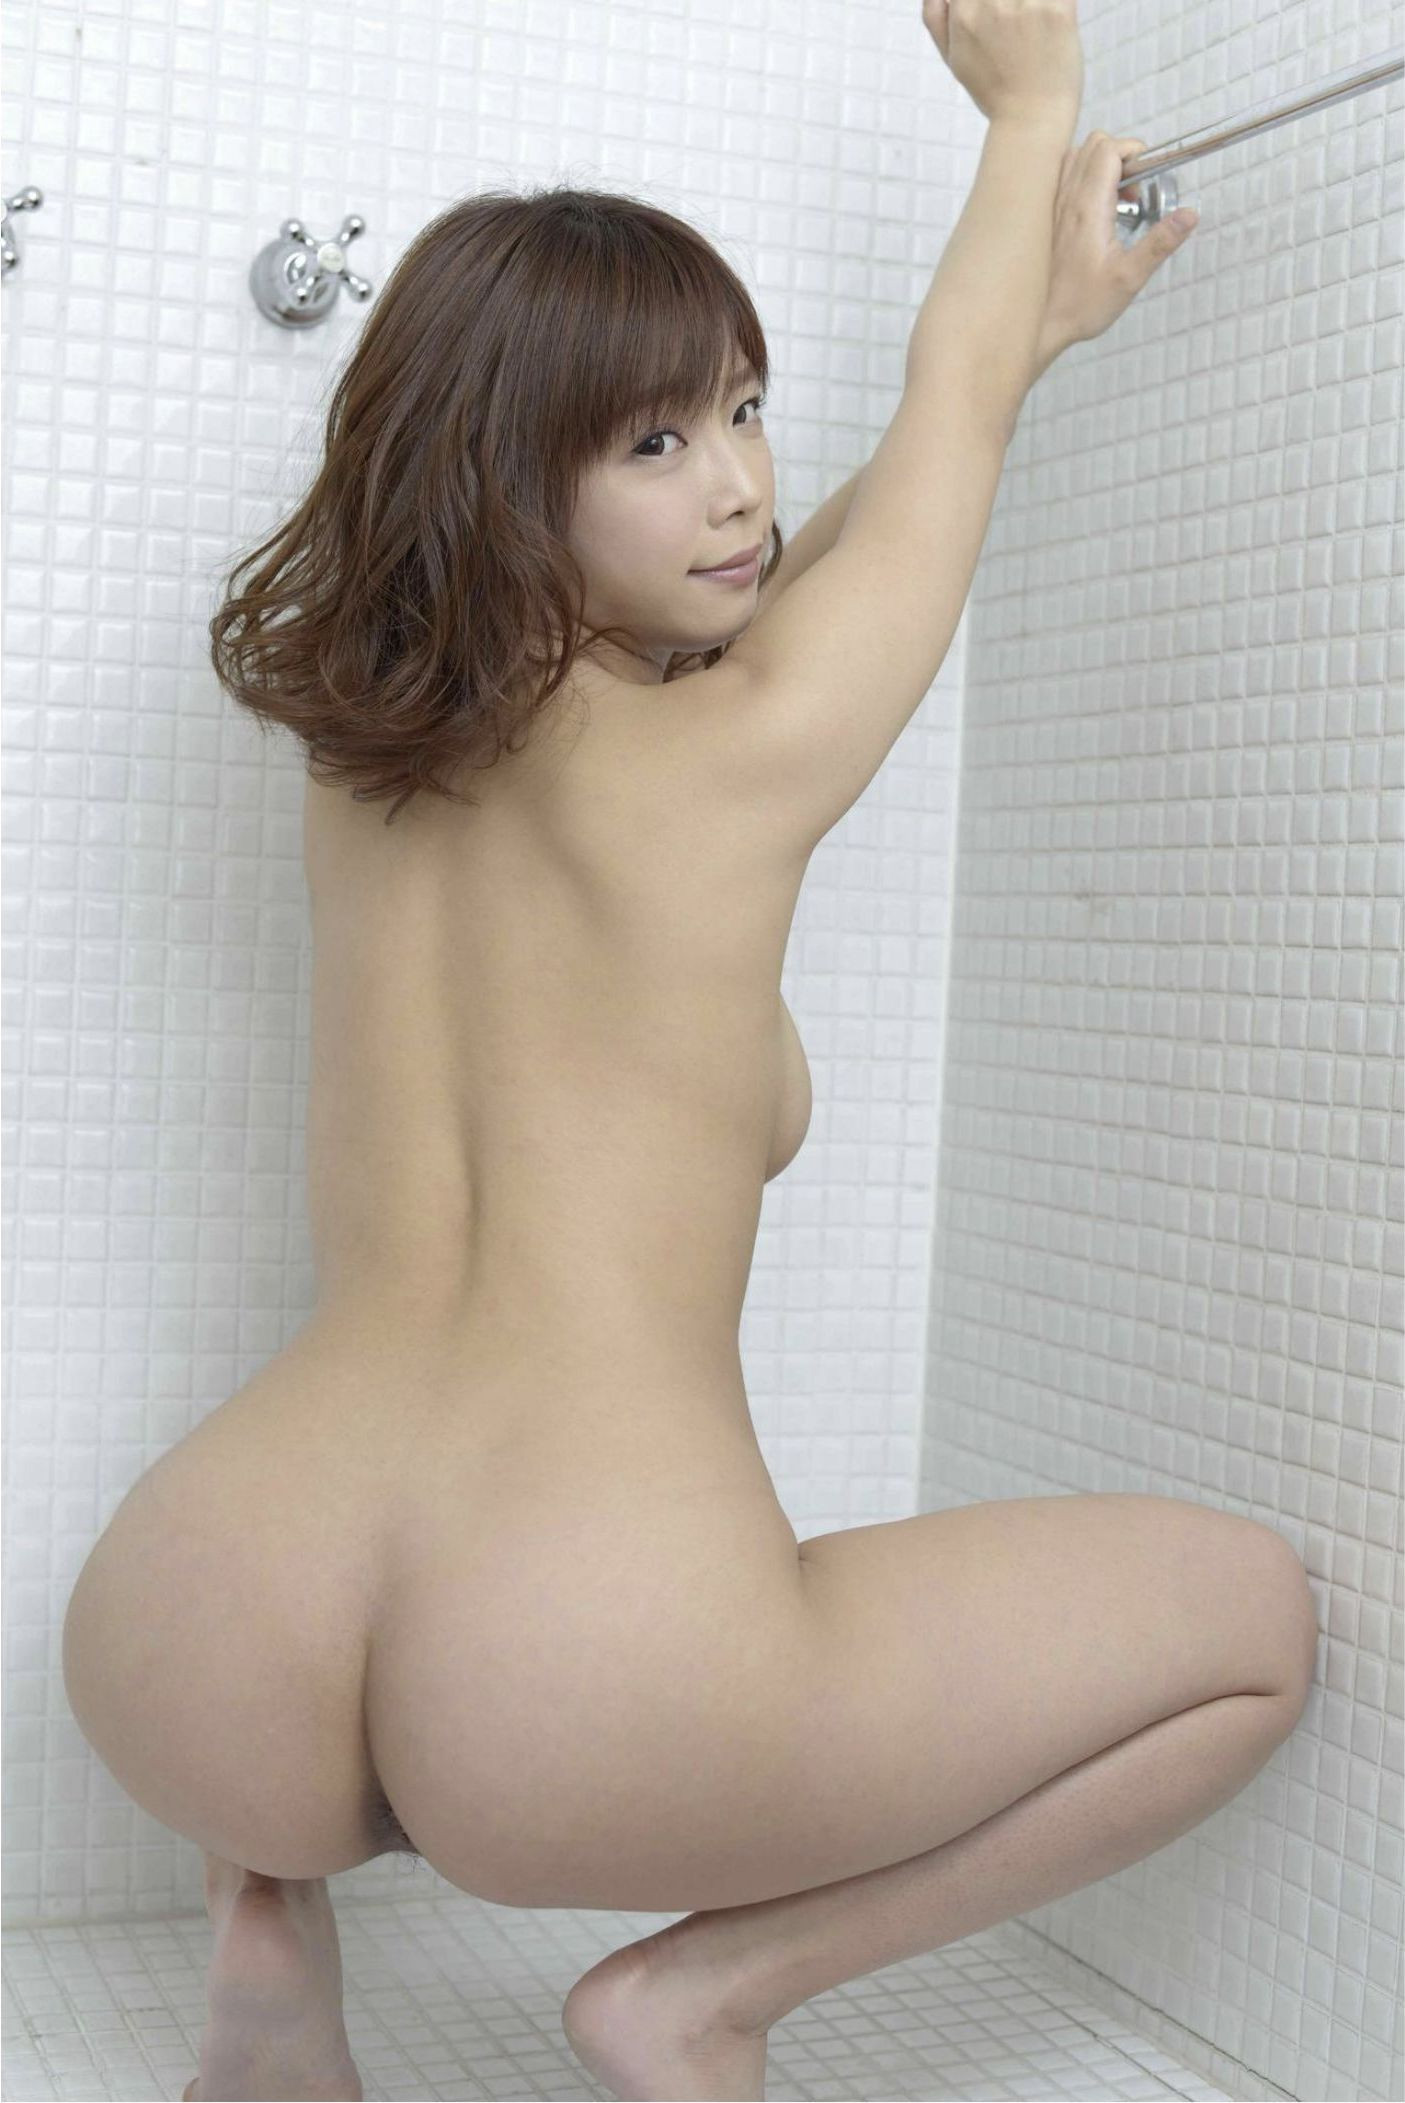 SOFT ON DEMAND GRAVURE COLLECTION 紗倉まな02 photo 108